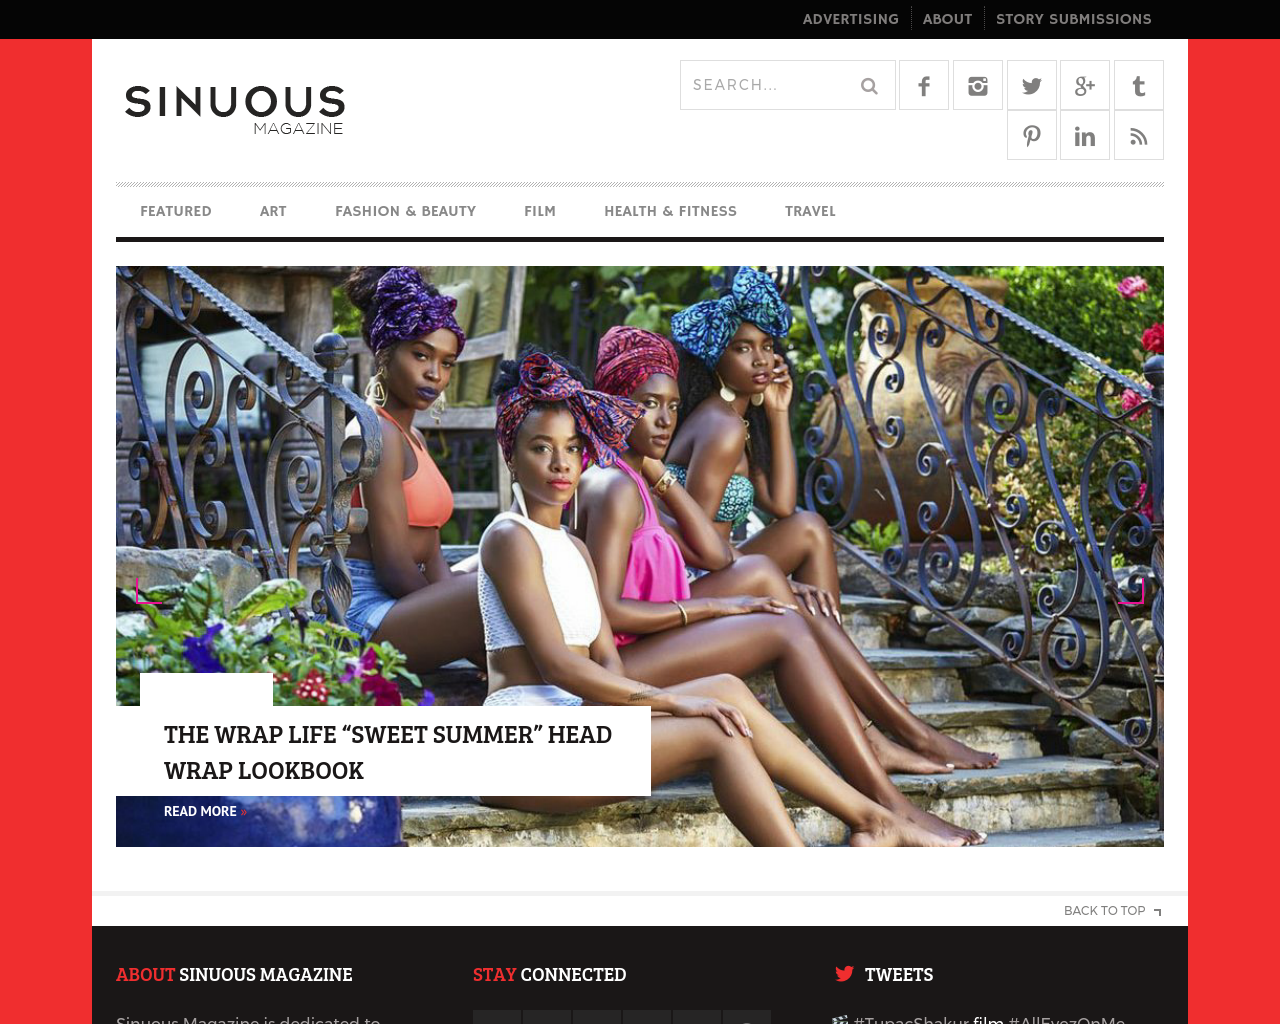 Sinuous-Magazine-Advertising-Reviews-Pricing